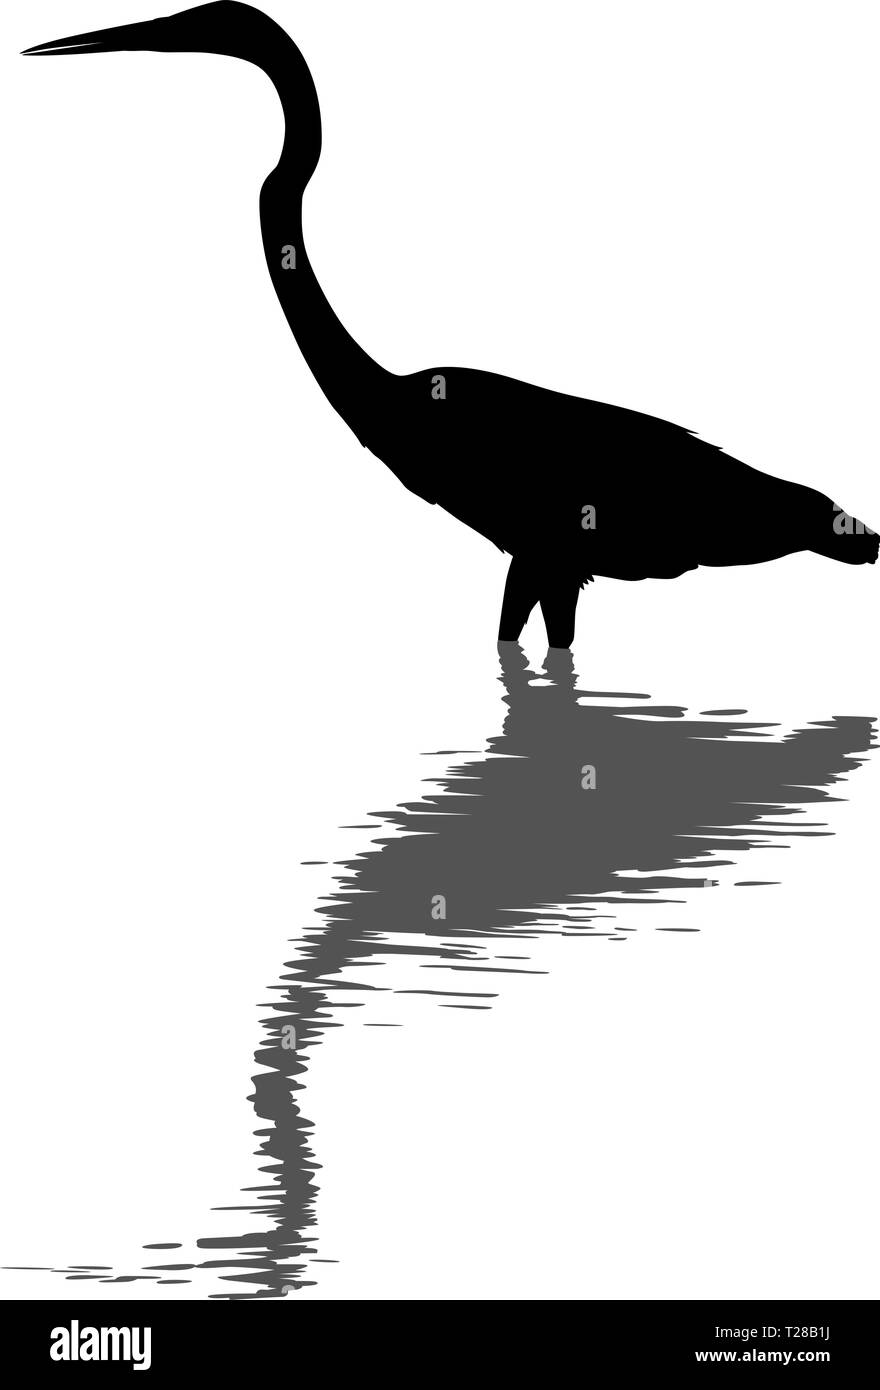 Editable vector silhouette of a great egret standing in deep water with its reflection - Stock Vector